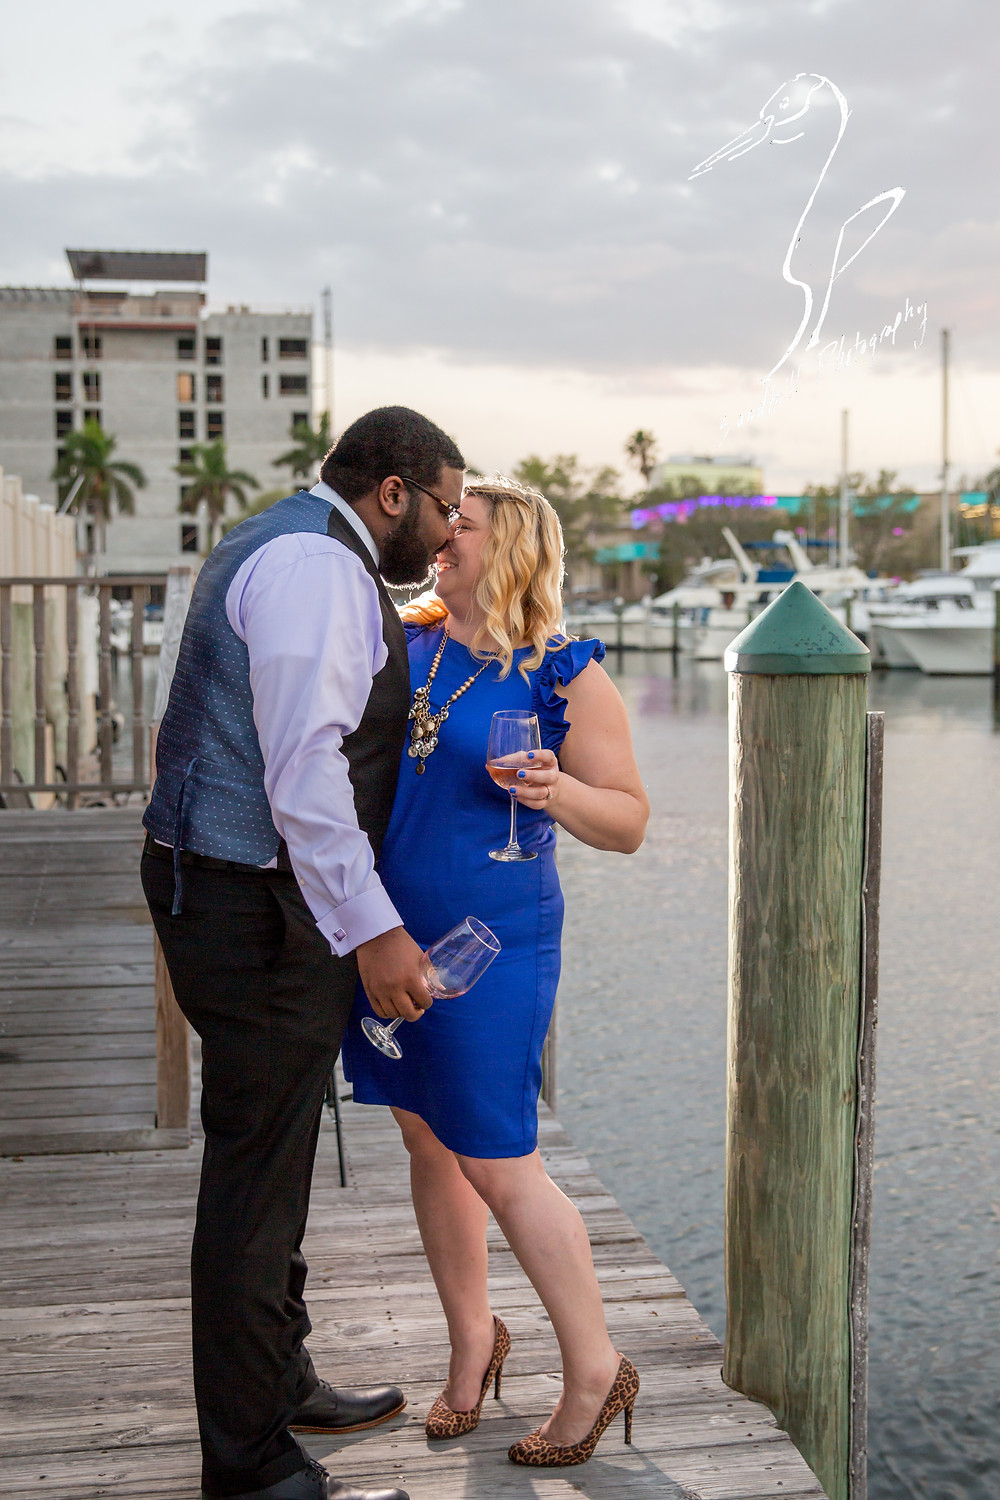 Pier 22 Downtown Bradenton Engagement Photography formal wear Wine Water Sunset Dock Boats